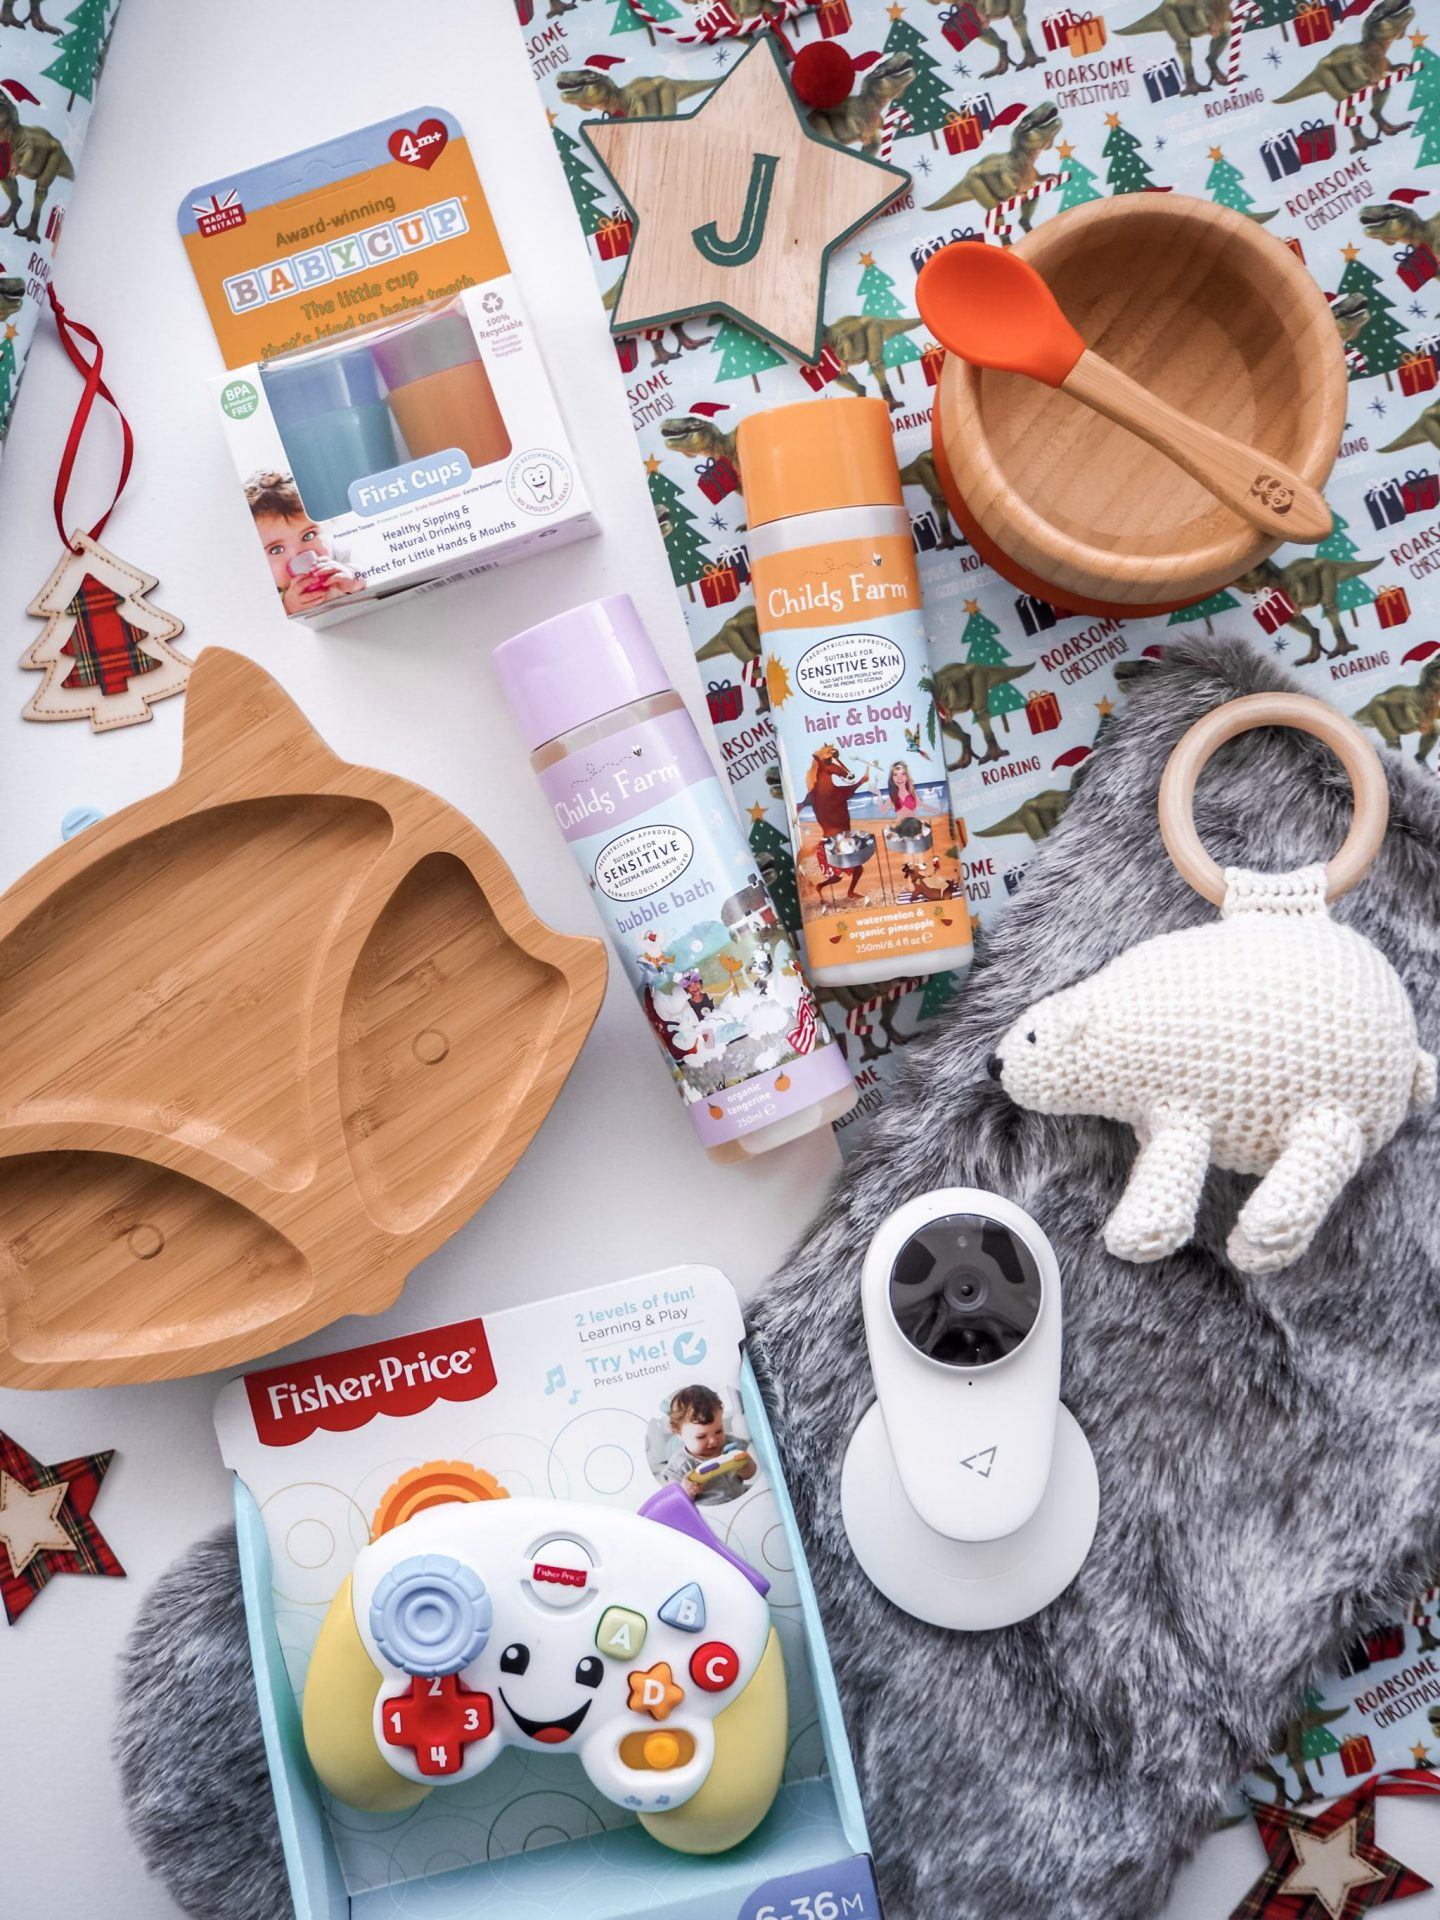 Functional First Christmas Gifts - bamboo plate, child's farm products, baby cup, polar bear rattle, camera, fisher price toy